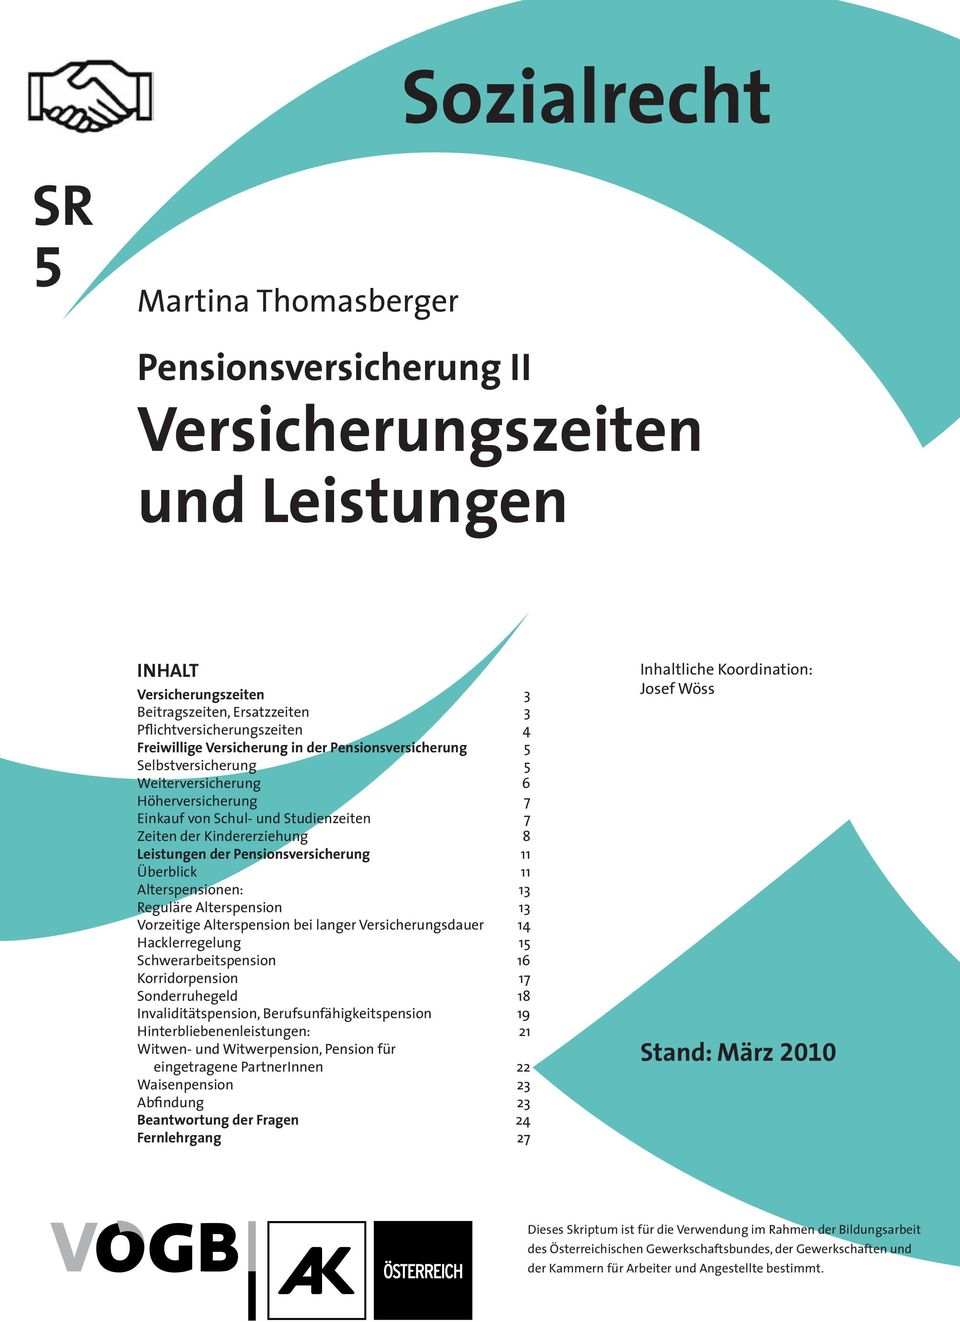 Pensionsversicherung 11 Überblick 11 Alterspensionen: 13 Reguläre Alterspension 13 Vorzeitige Alterspension bei langer Versicherungsdauer 14 Hacklerregelung 15 Schwerarbeitspension 16 Korridorpension